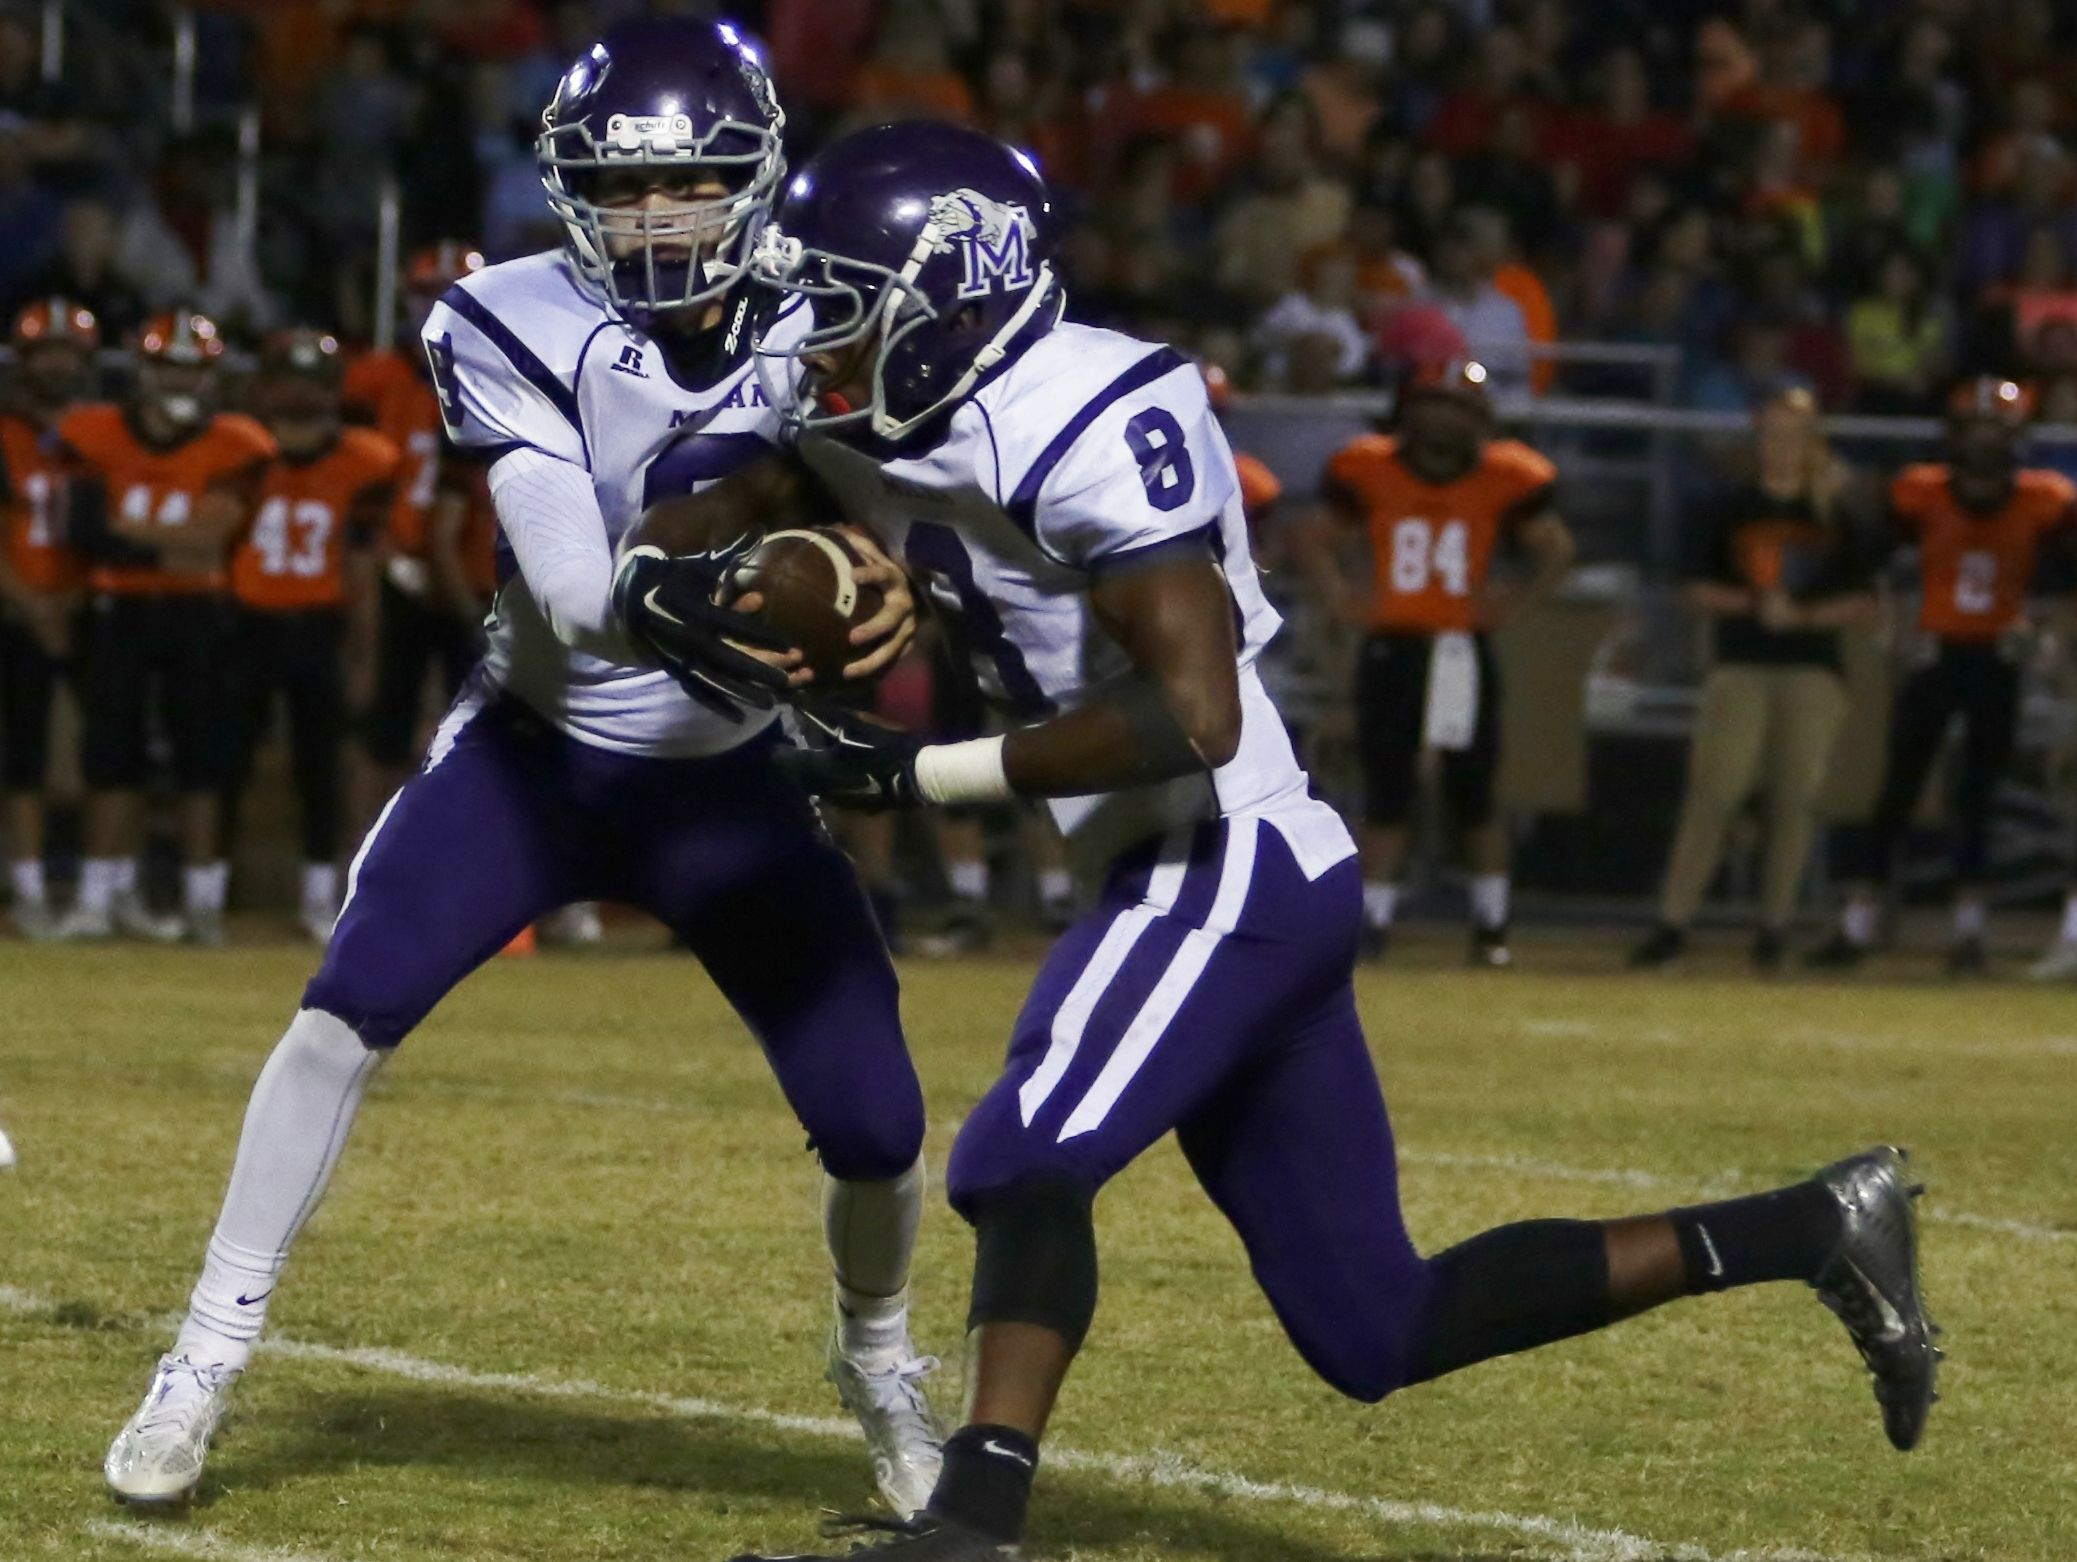 Milan's Anthony Ballard takes a handoff from Taylor Lockhart during Friday?s game last week at South Gibson.